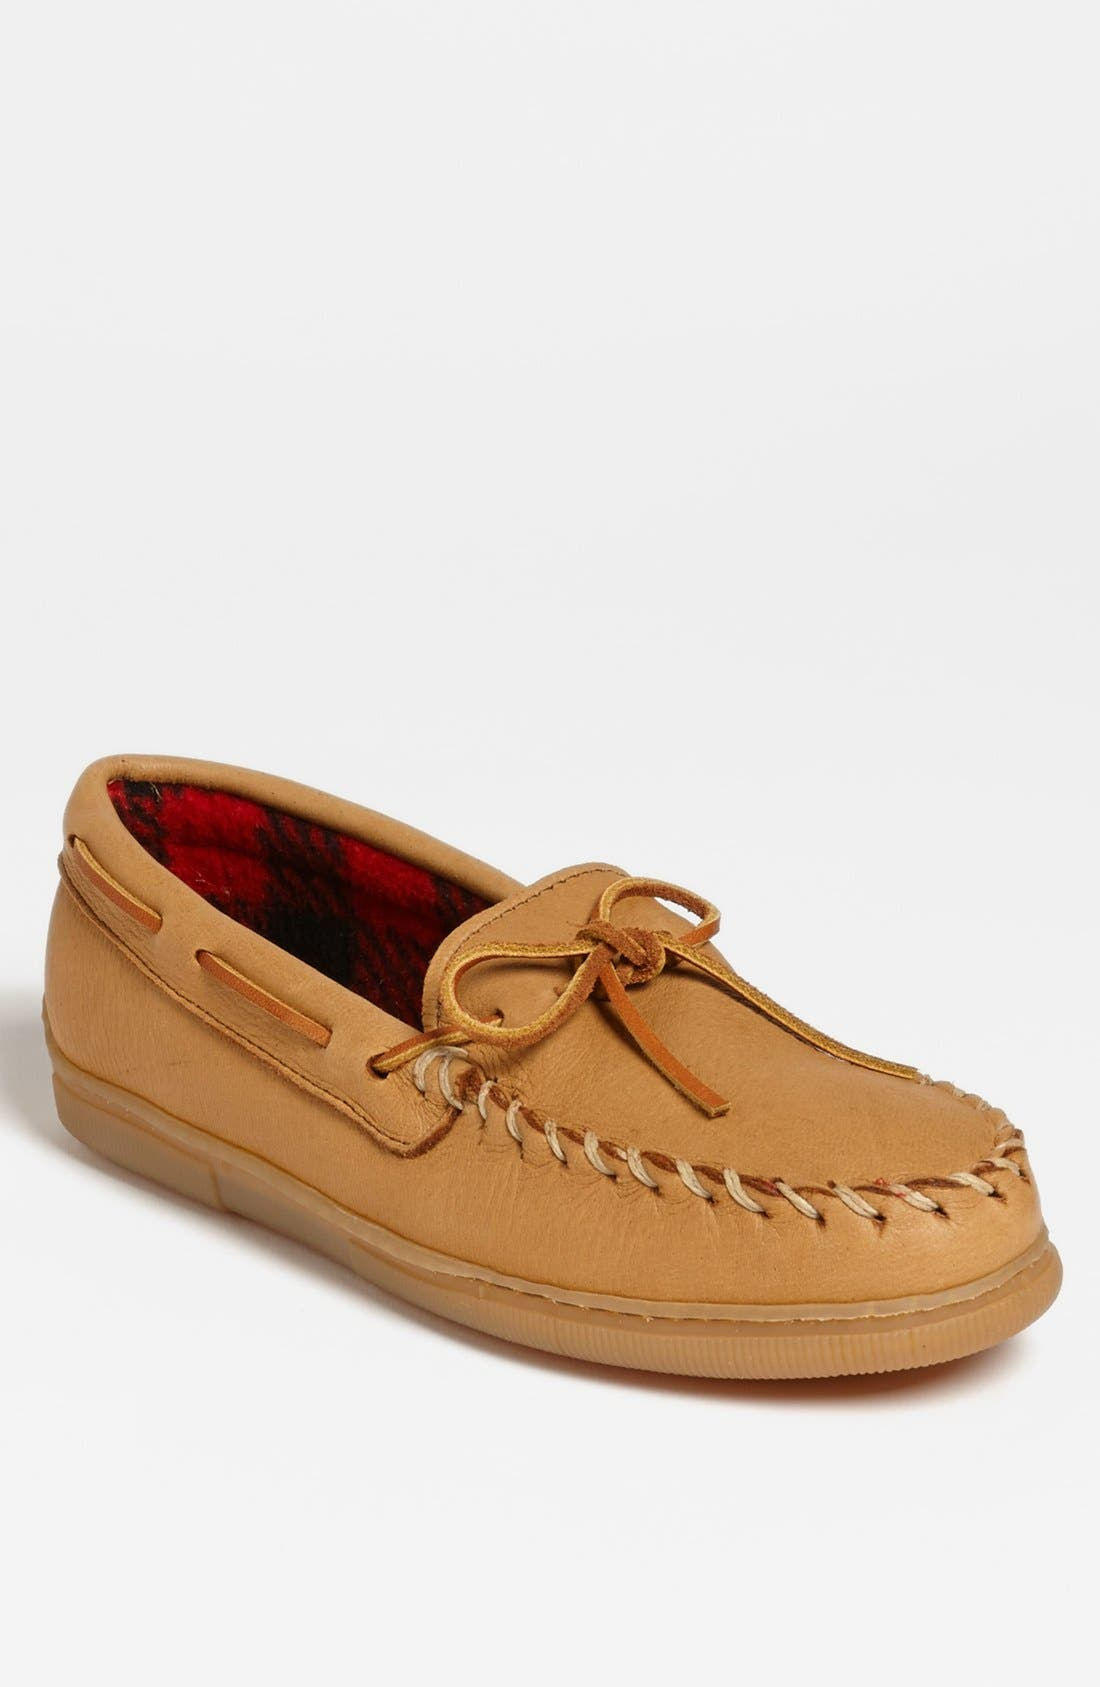 Moosehide Moccasin,                         Main,                         color, NATURAL MOOSE